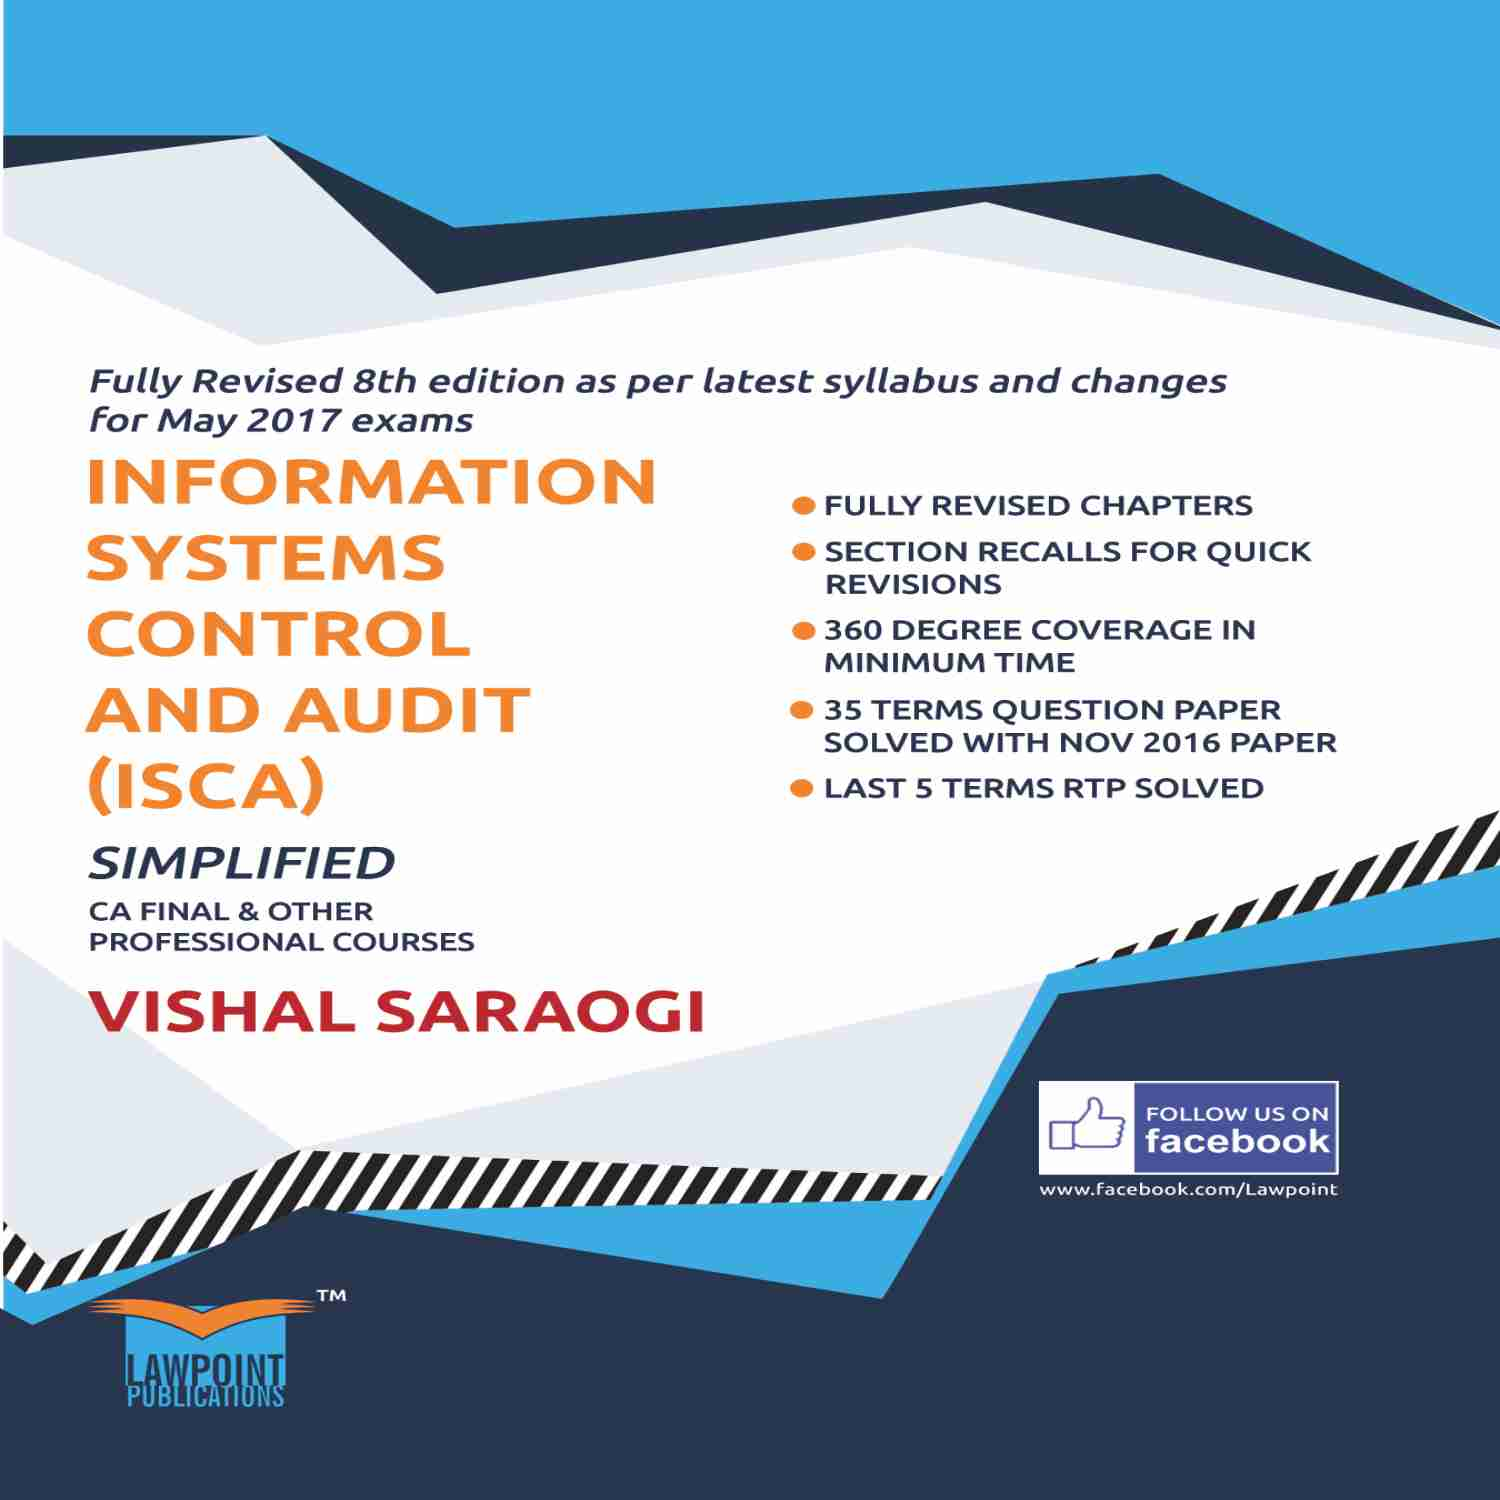 Information Systems Control and Audit Simplified